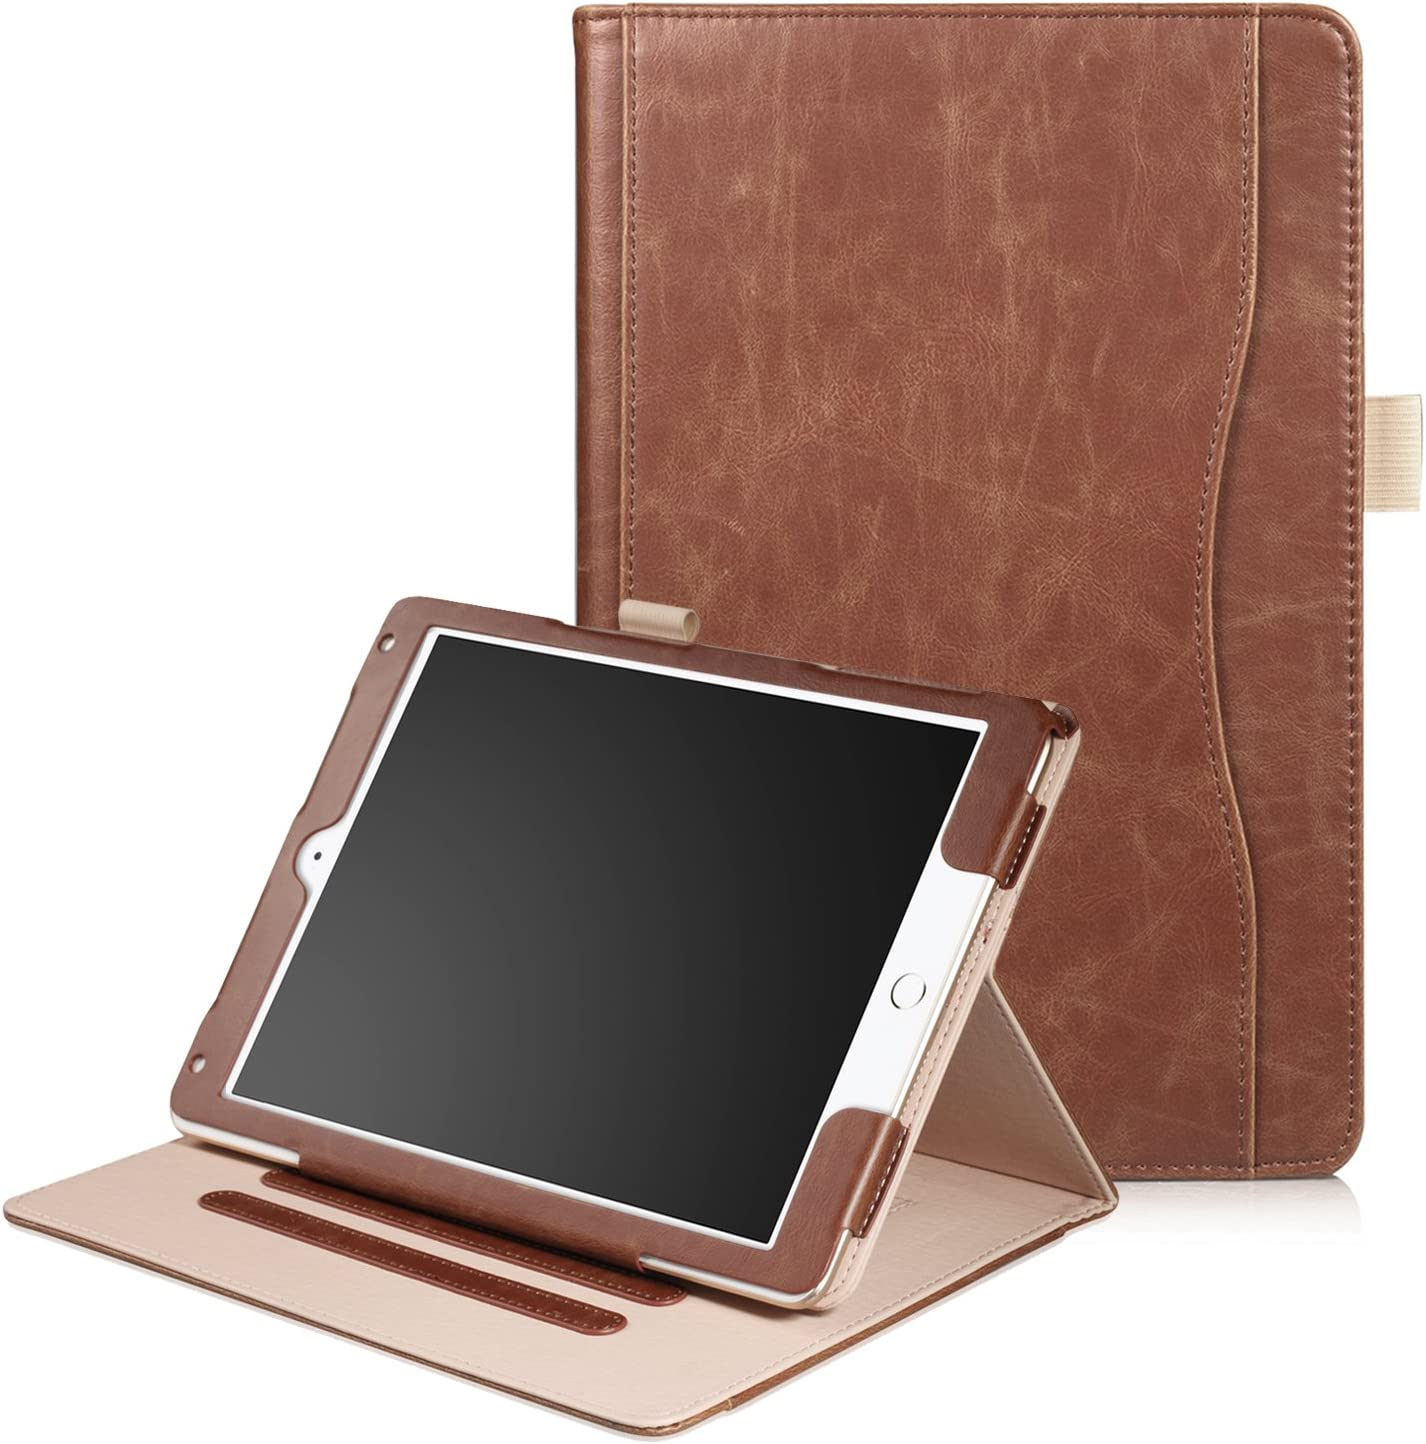 XBE Apple New iPad 9.7 inch 2018/2017 / iPad Air / Air2 Case - Multifunctional Cover for Apple New iPad 9.7 inch 2018/2017 iPad Air/Air2, with Multiple Viewing Angles (Brown)